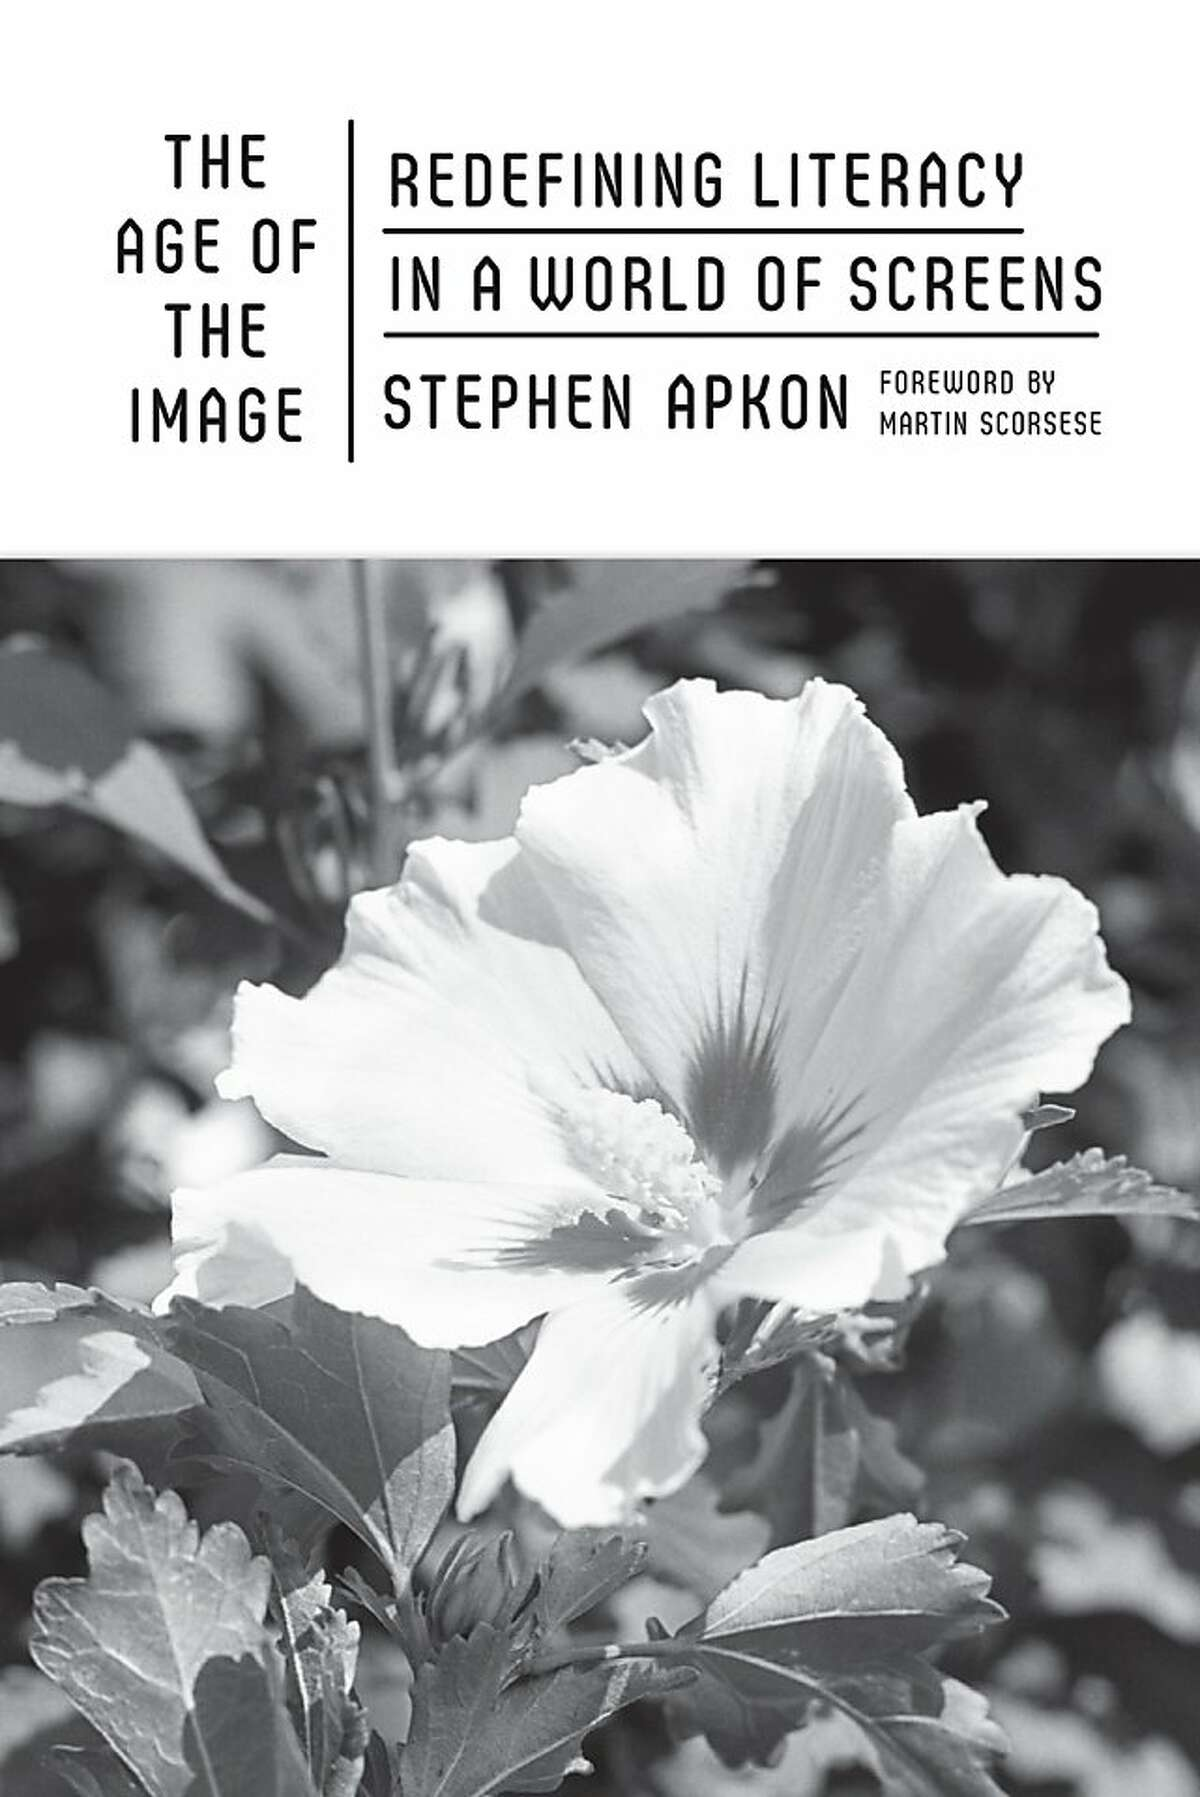 The Age of the Image: Redefining Literacy in a World of Screens, by Stephen Apkon